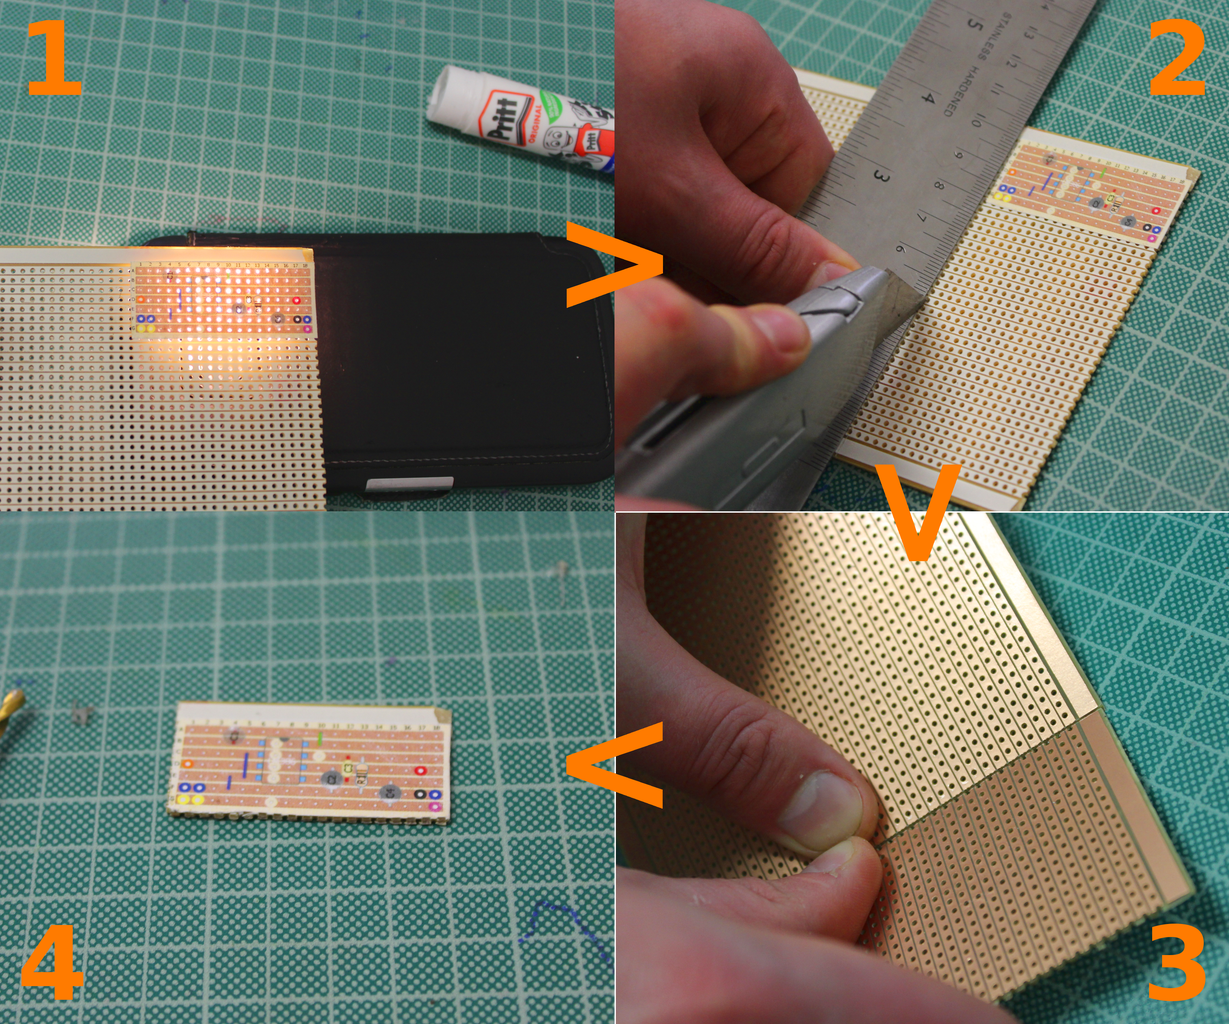 LET'S ATTACH THE OVERLAY AND PREPARE THE STRIPBOARD